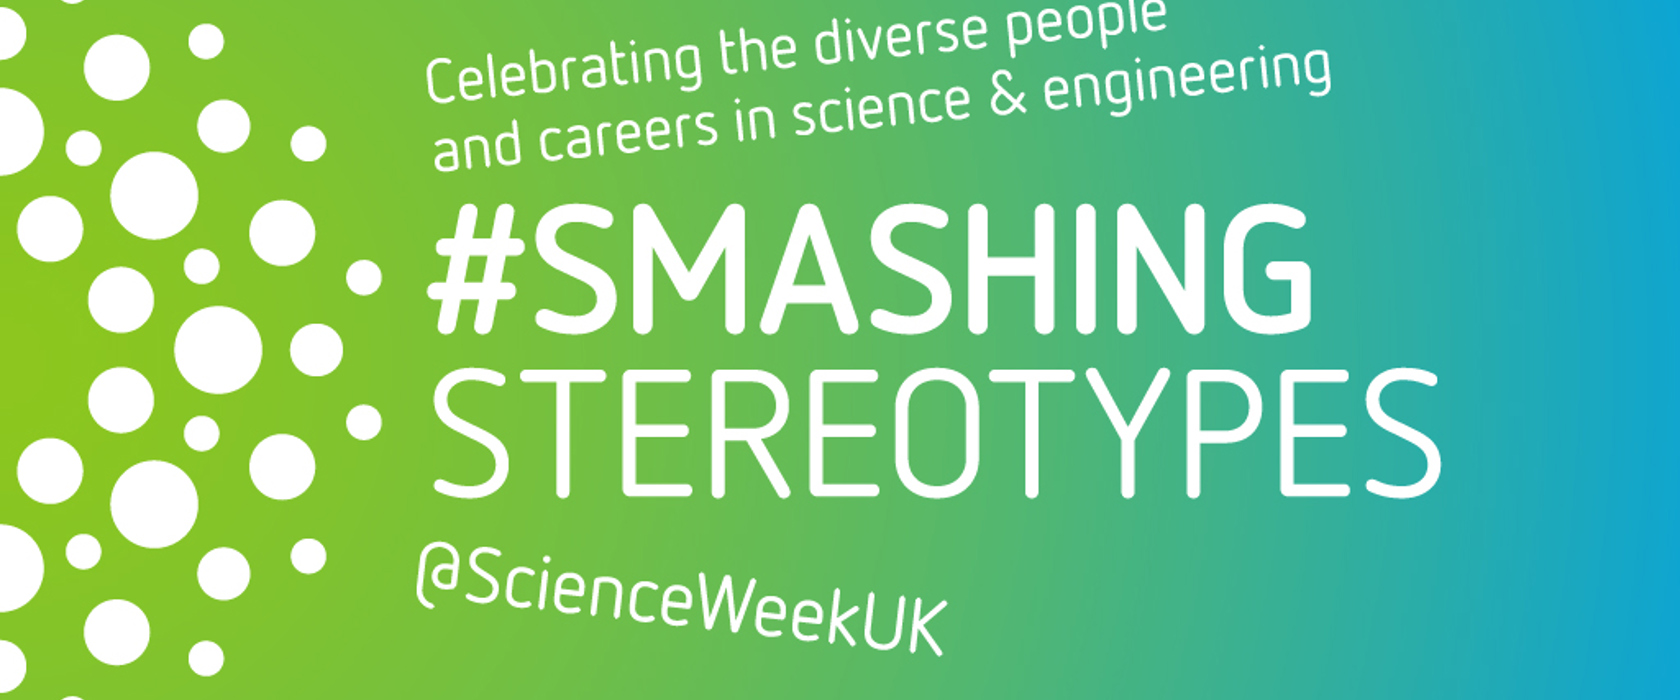 Diverse teams join the Smashing Stereotypes campaign!